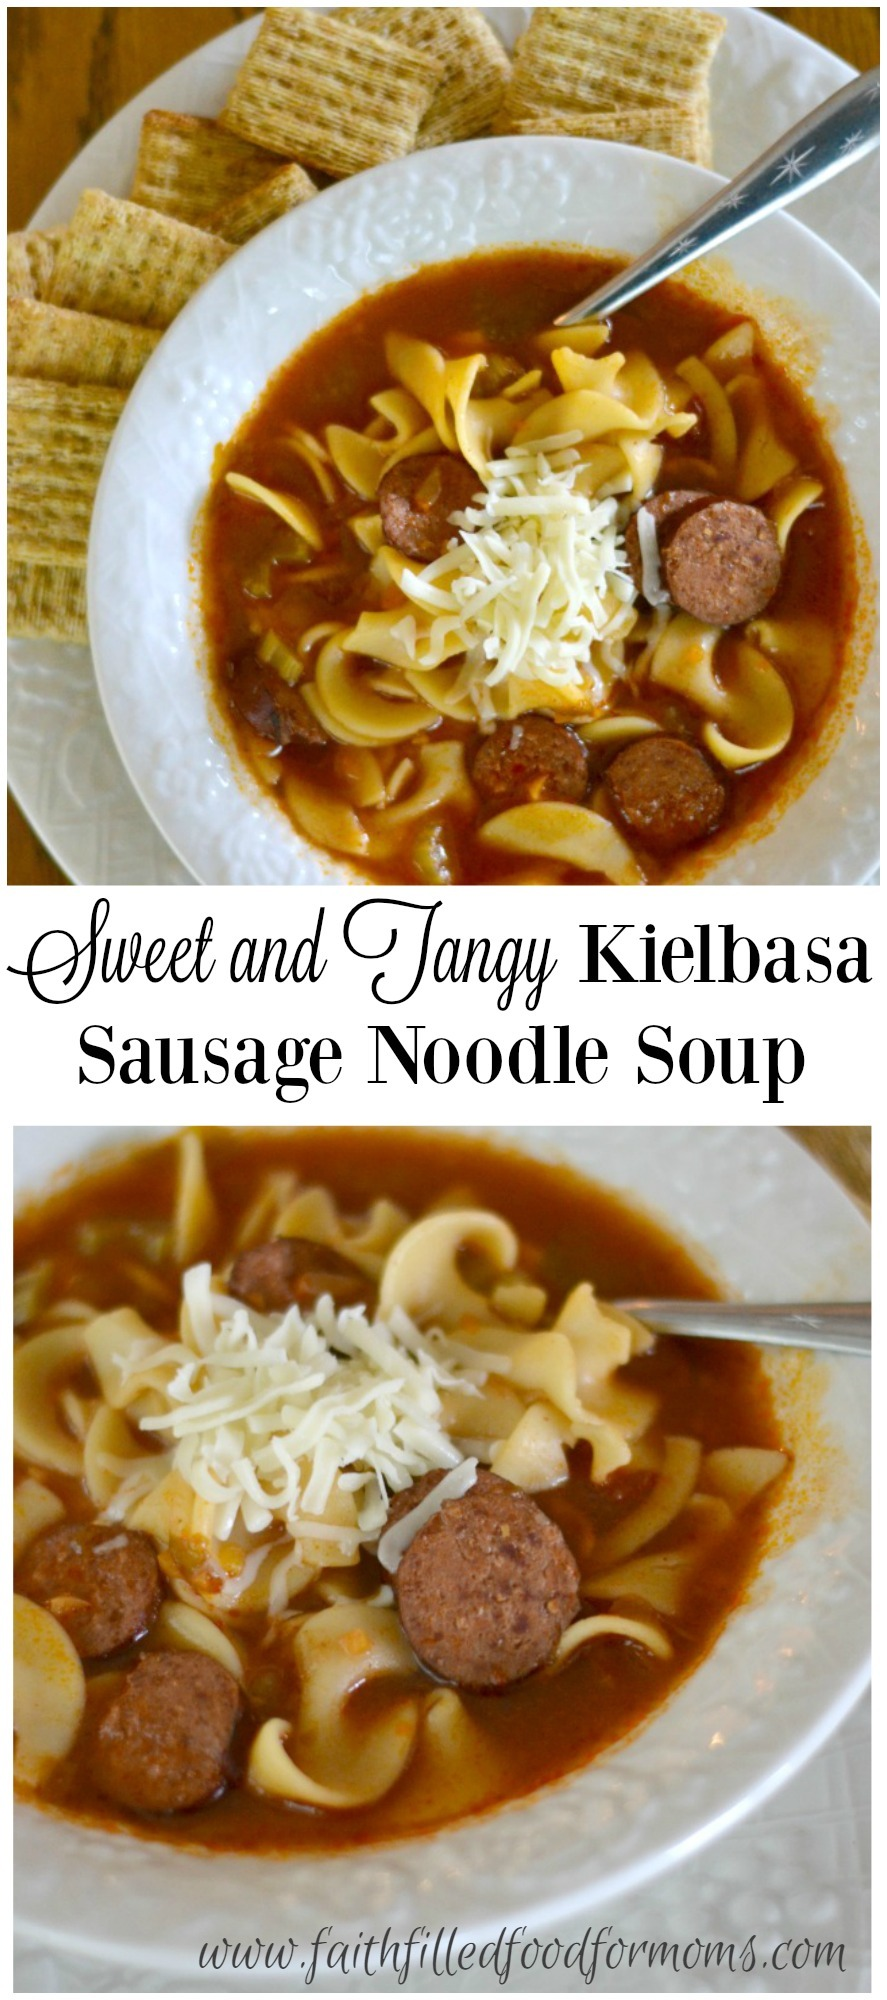 This sweet and tangy Kielbasa Soup takes only minutes to put together! A great hearty Fall meal that the whole family will love!